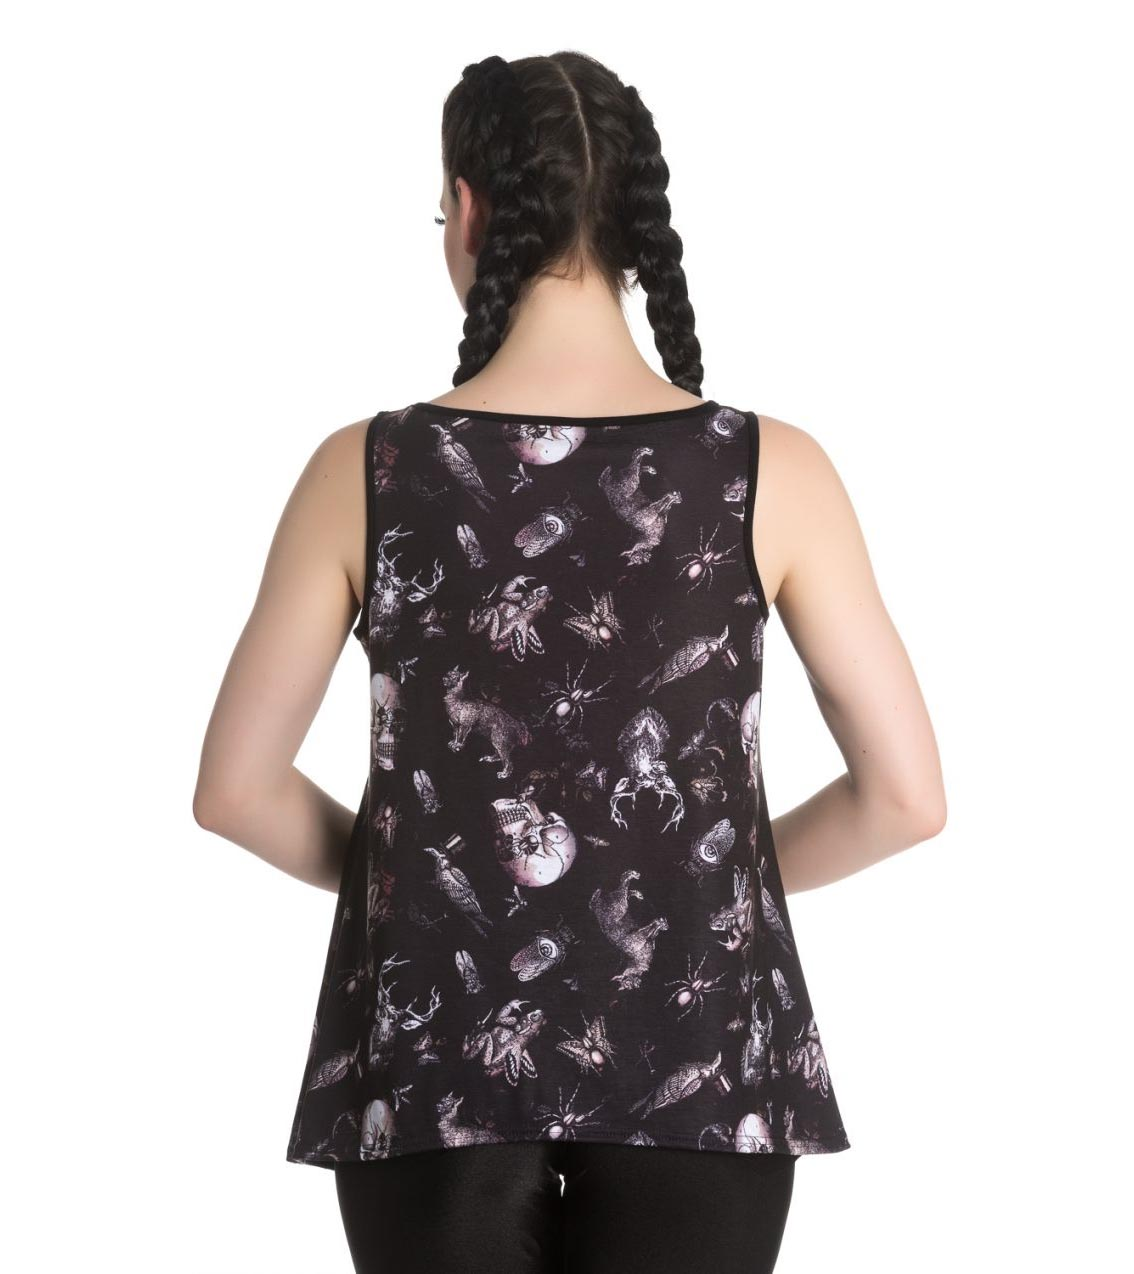 Hell-Bunny-Black-Vest-Cami-Top-Goth-Witch-DARWIN-Taxidermy-Skulls-All-Sizes thumbnail 13